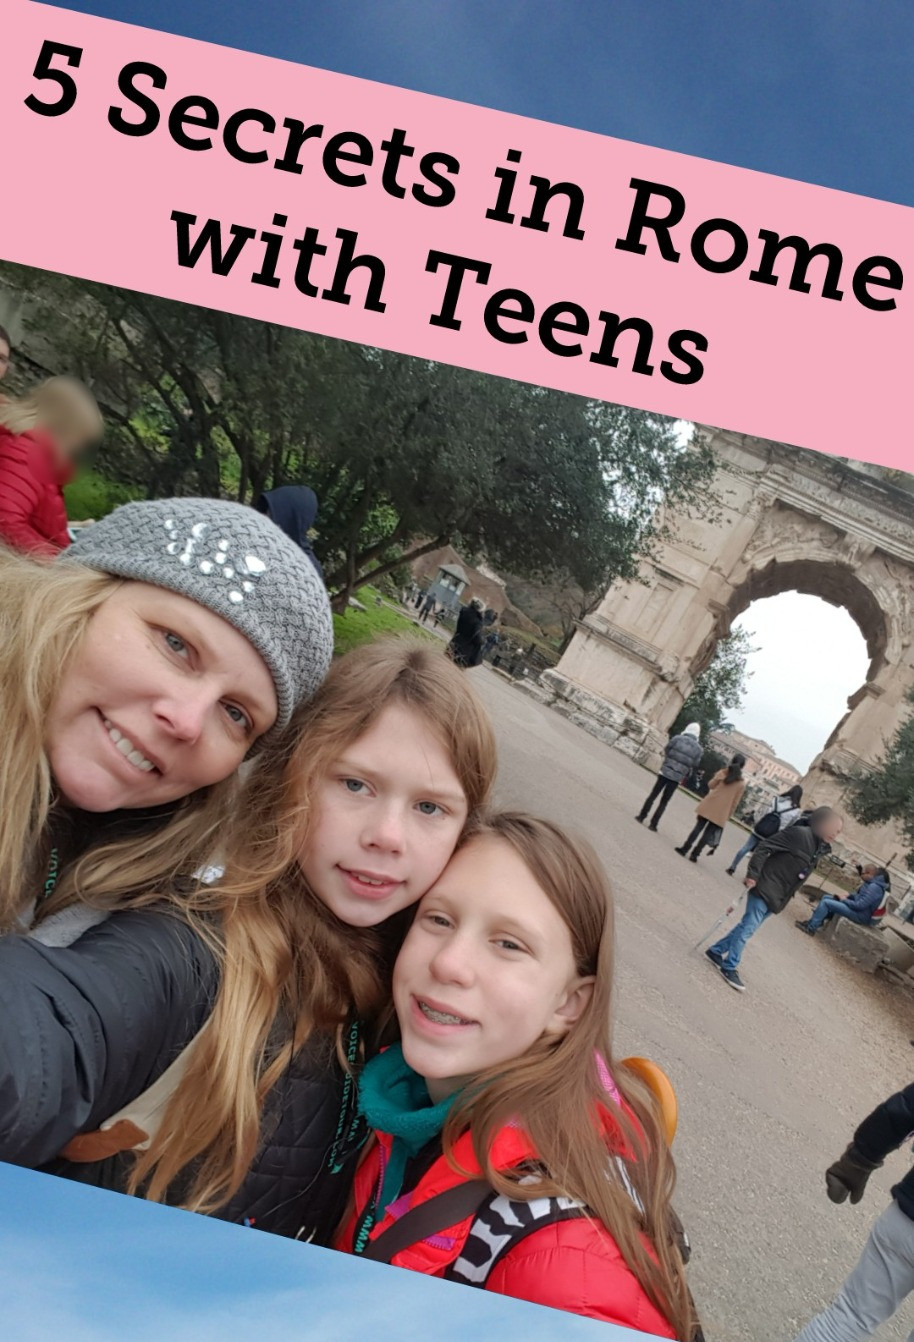 5 Secret Things to do in Rome with Teens Besides the Usual Stuff